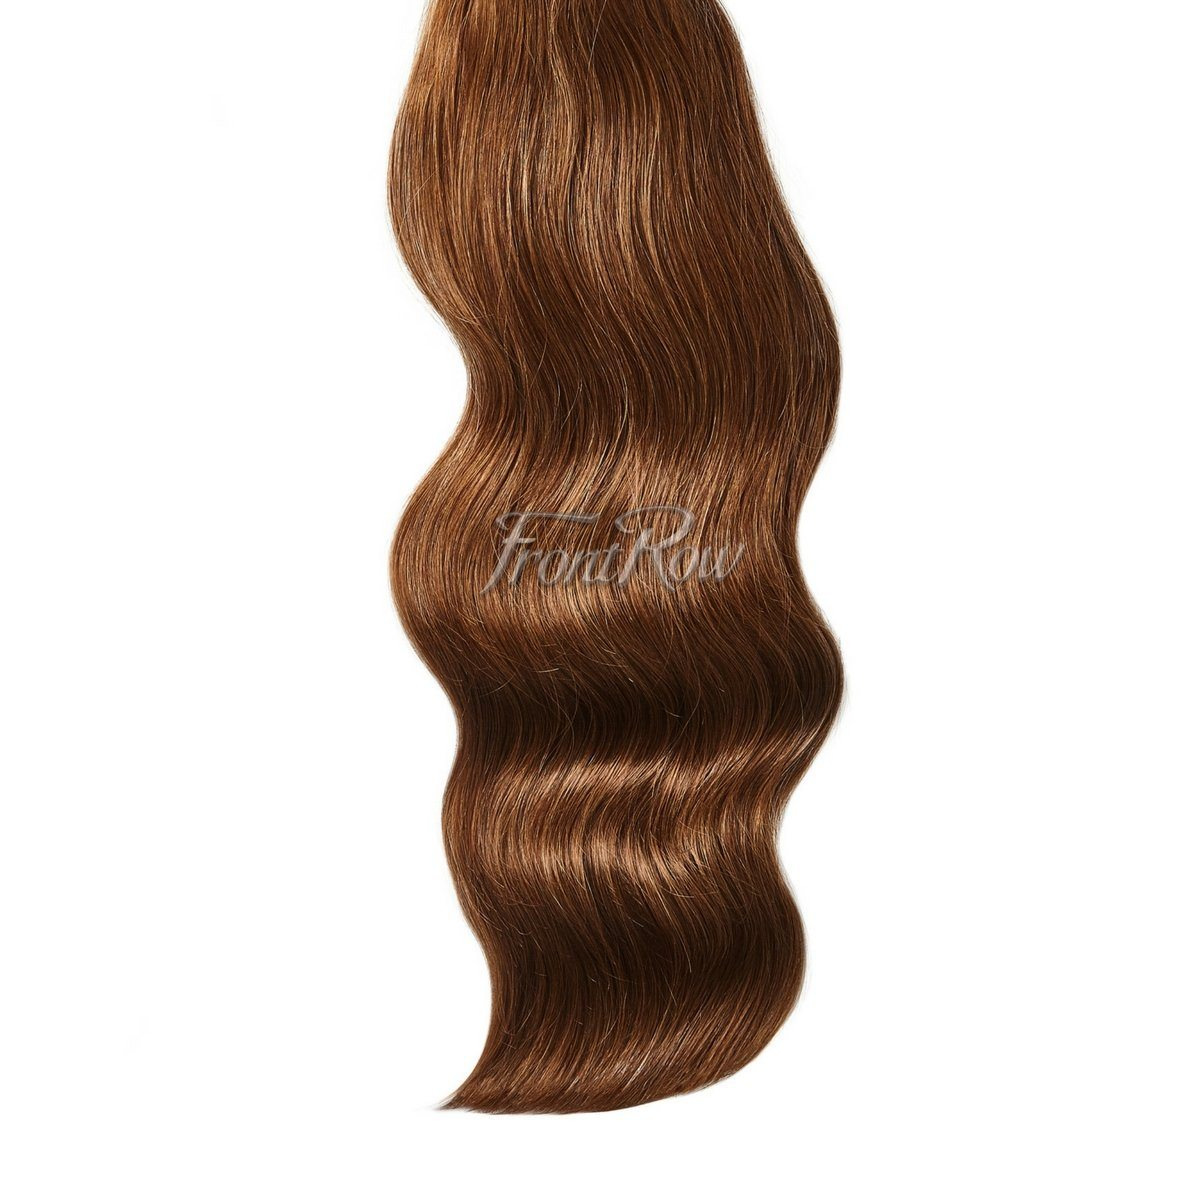 A Little Nuts 20inch Chestnut Brown Clip-in Hair Extensions